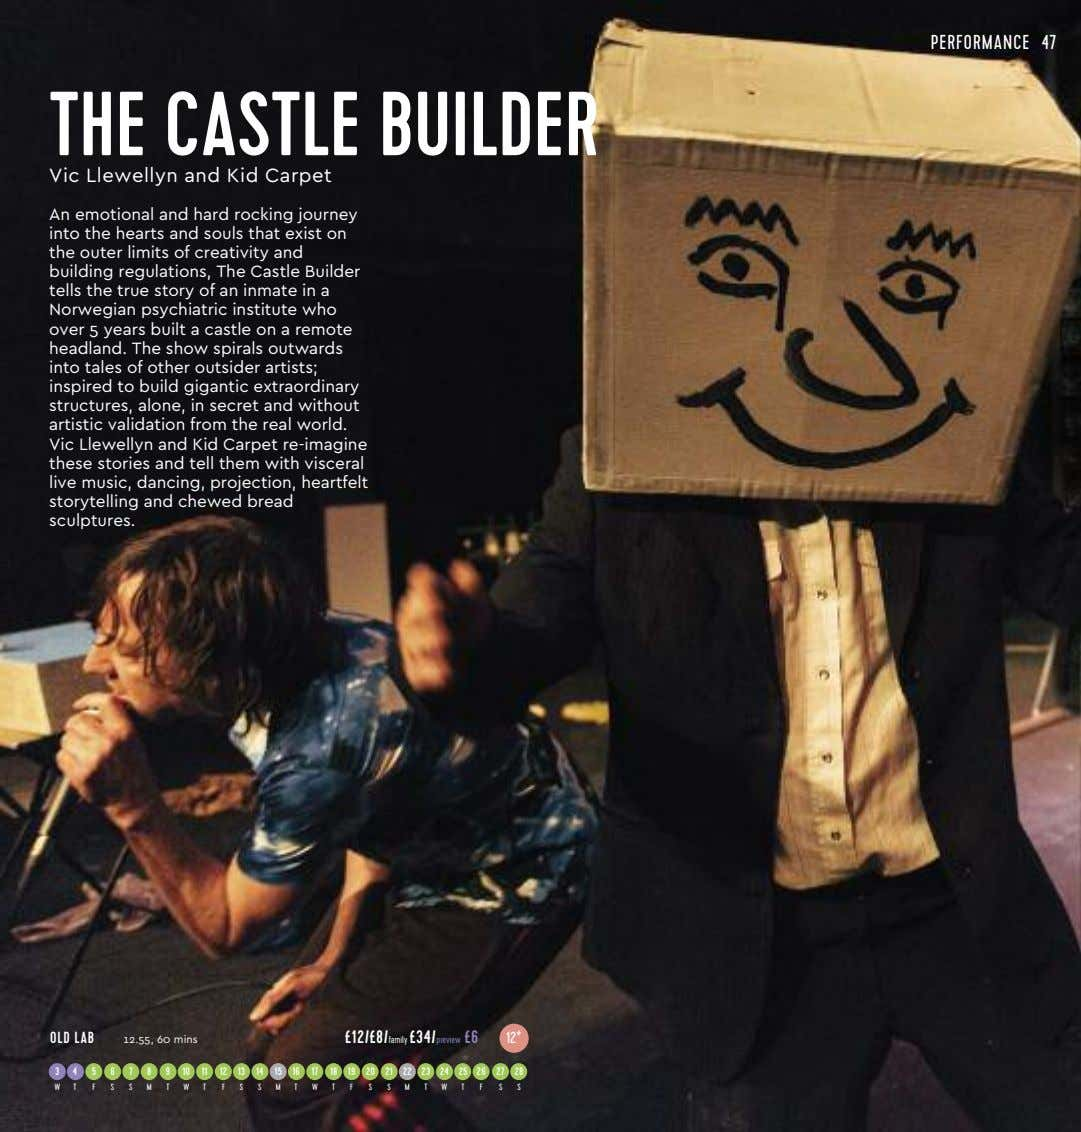 PERFORMANCE 47 THE CASTLE BUILDER Vic Llewellyn and Kid Carpet An emotional and hard rocking